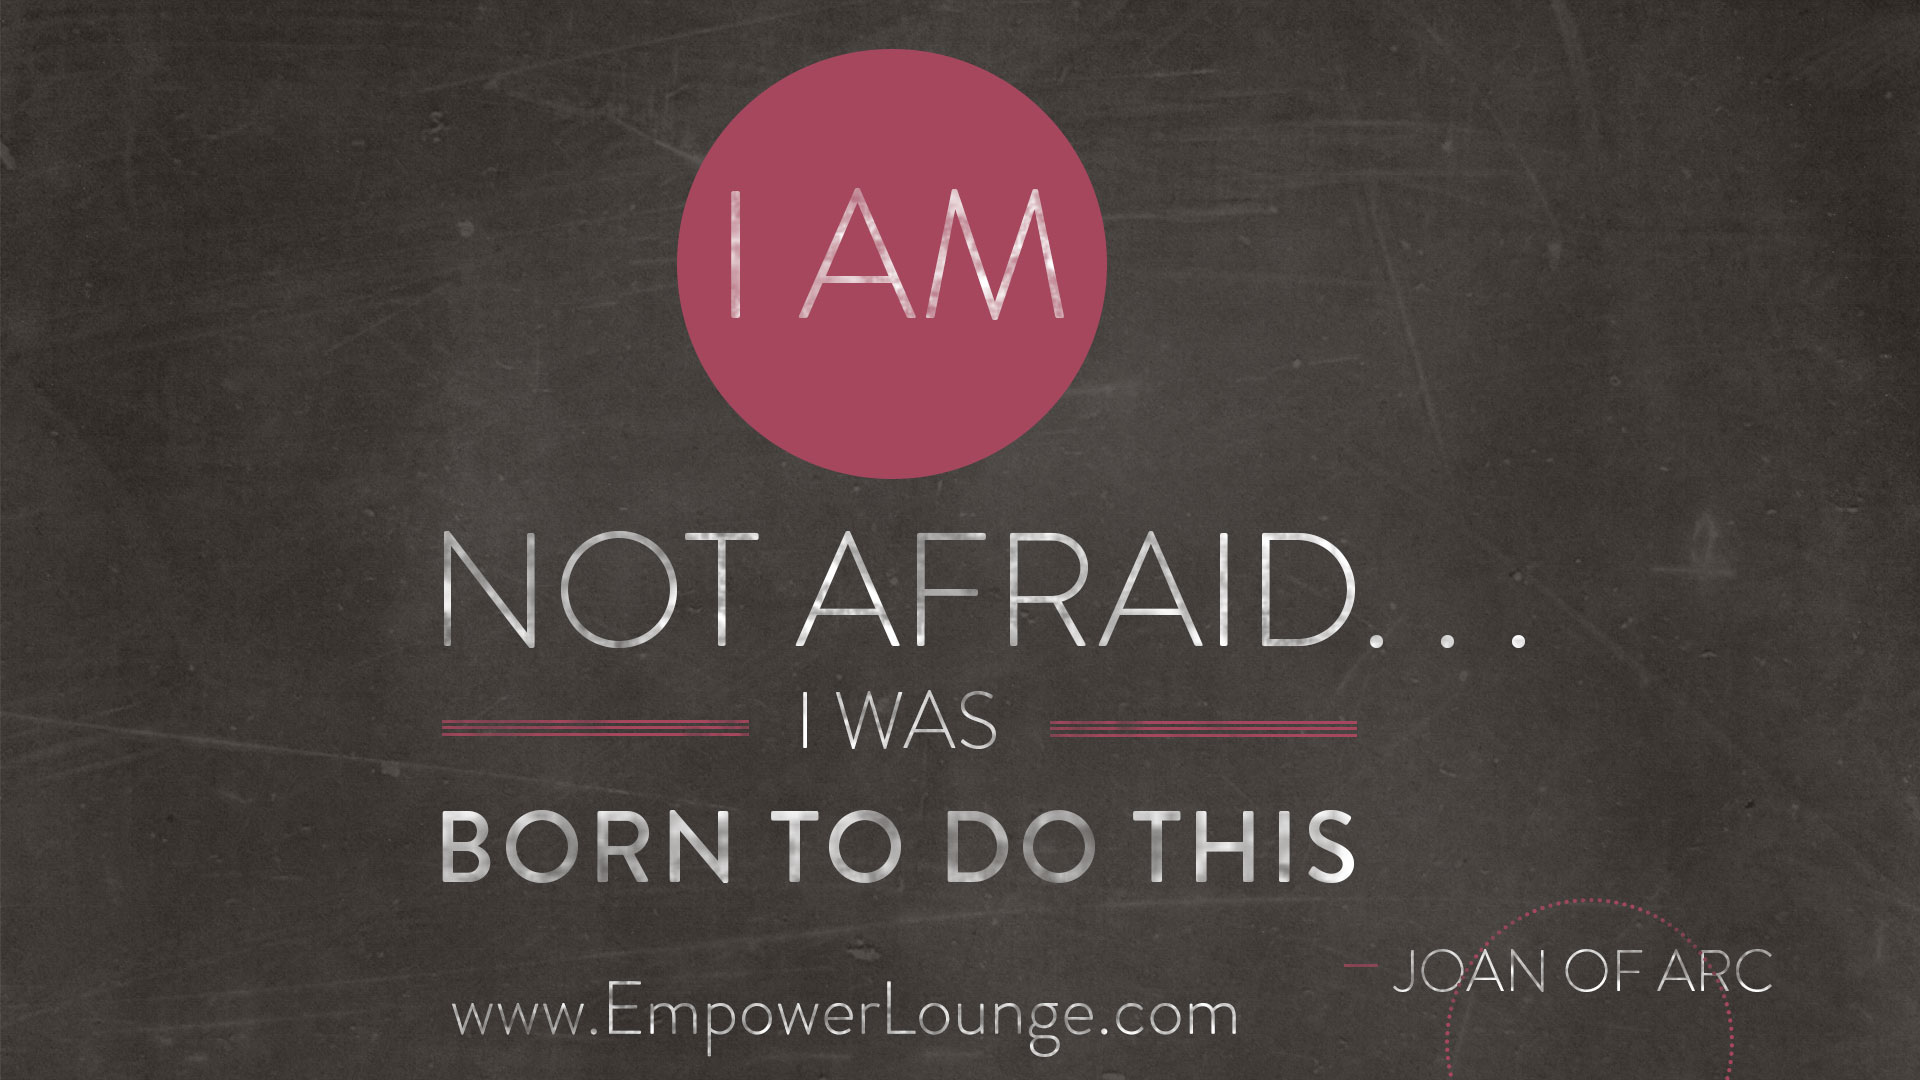 Inspirational Quotes Women Inspiring Quoteswomen Trailblazers  Empower Lounge